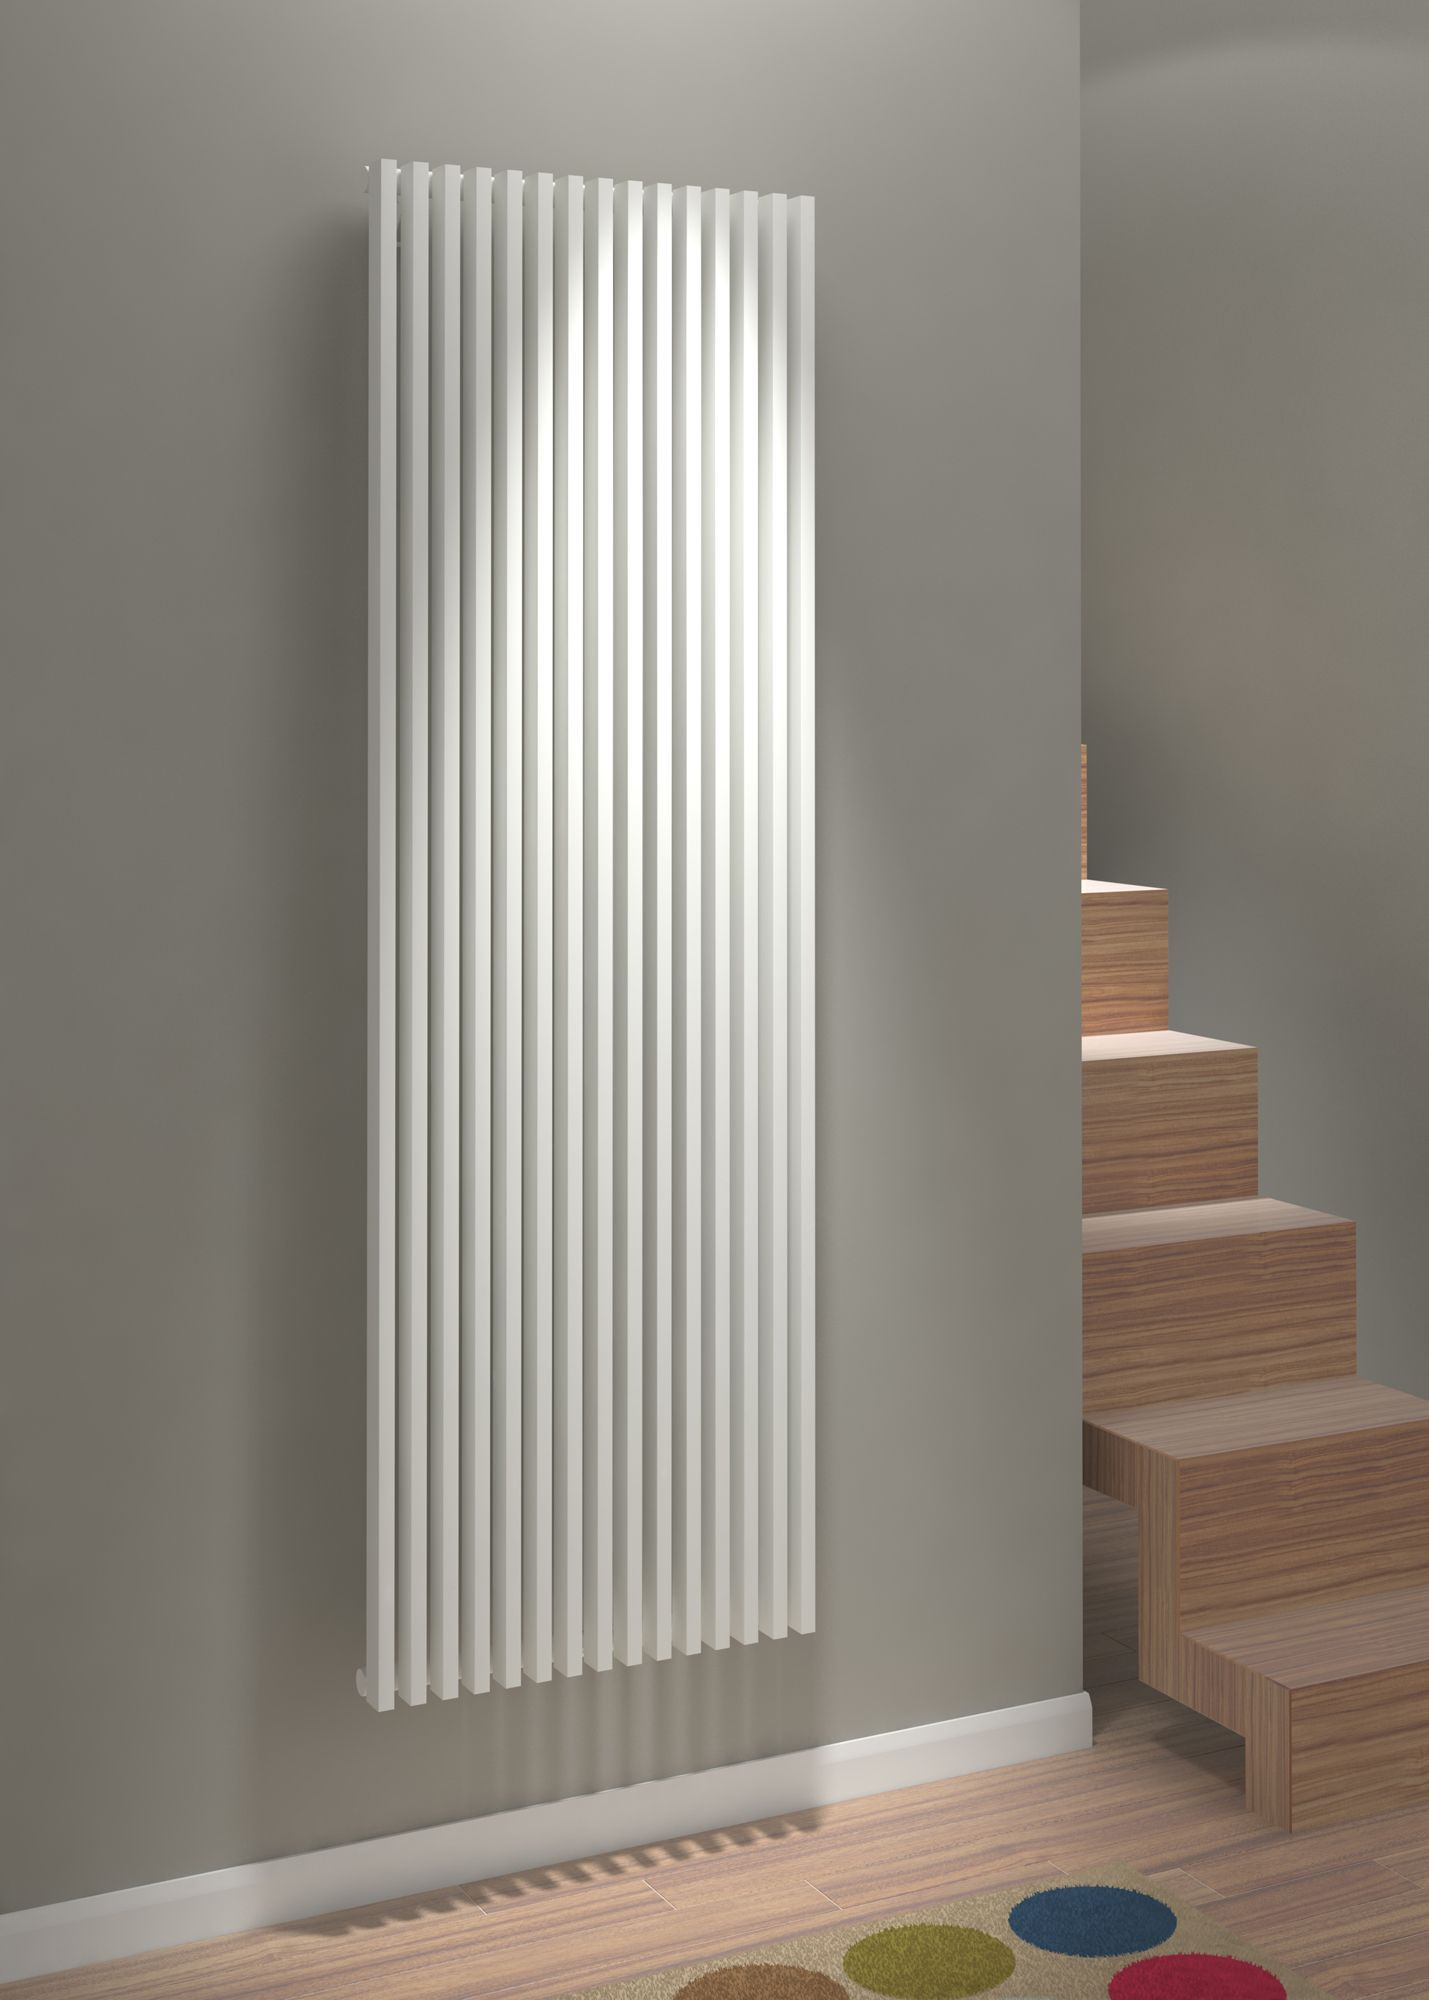 Kudox Xylo Vertical Radiator White (h)1800 Mm (w)580 Mm